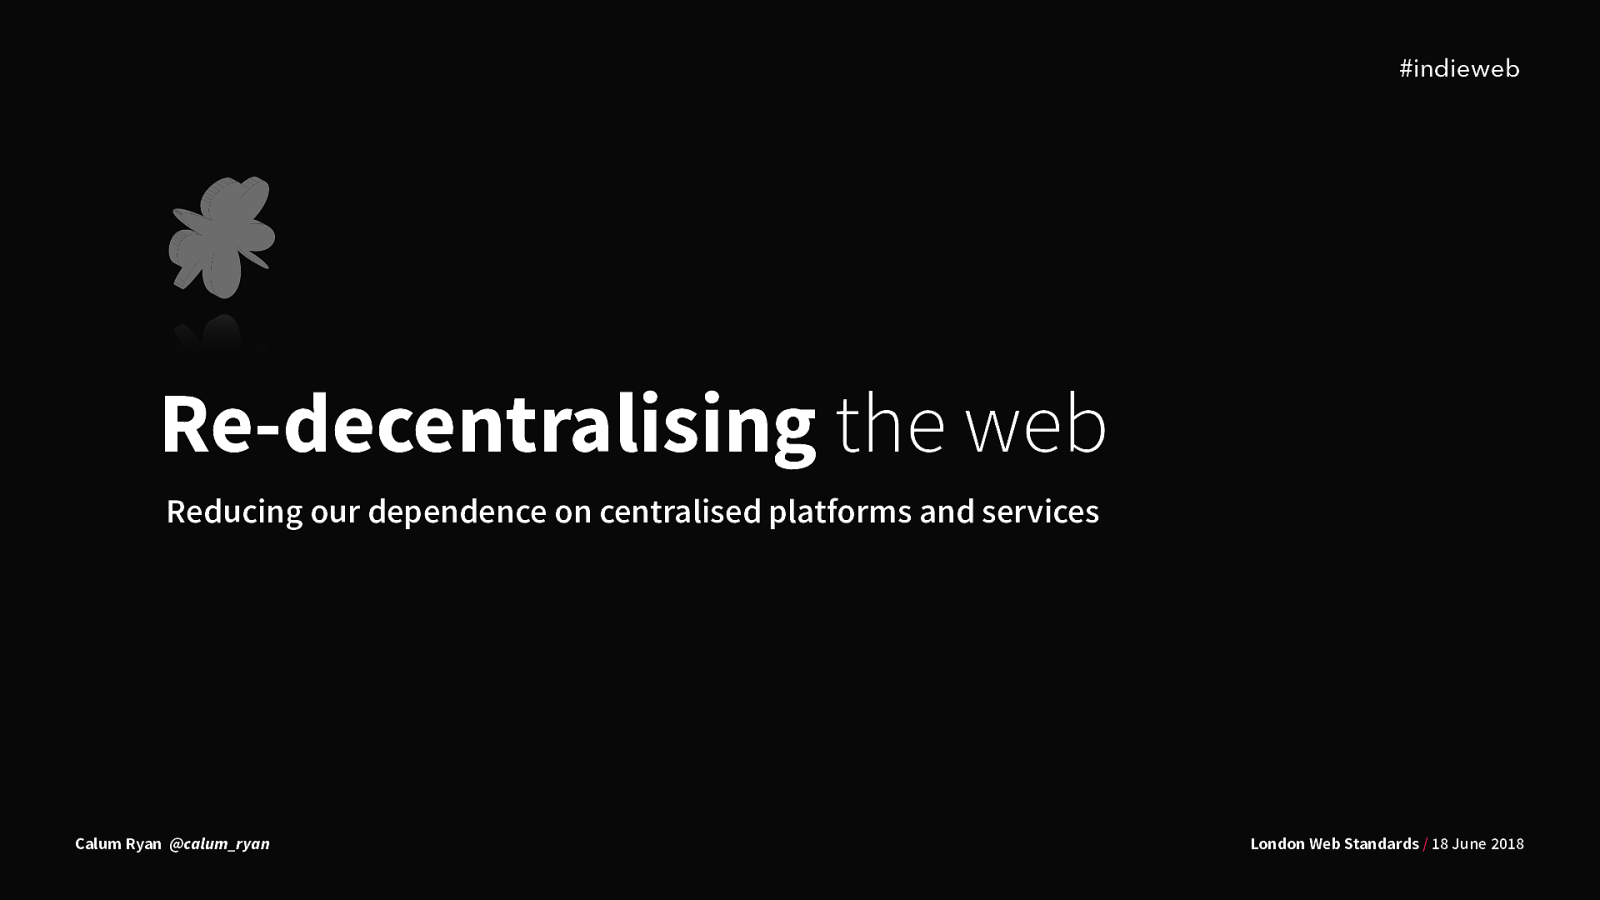 Redecentralising the web